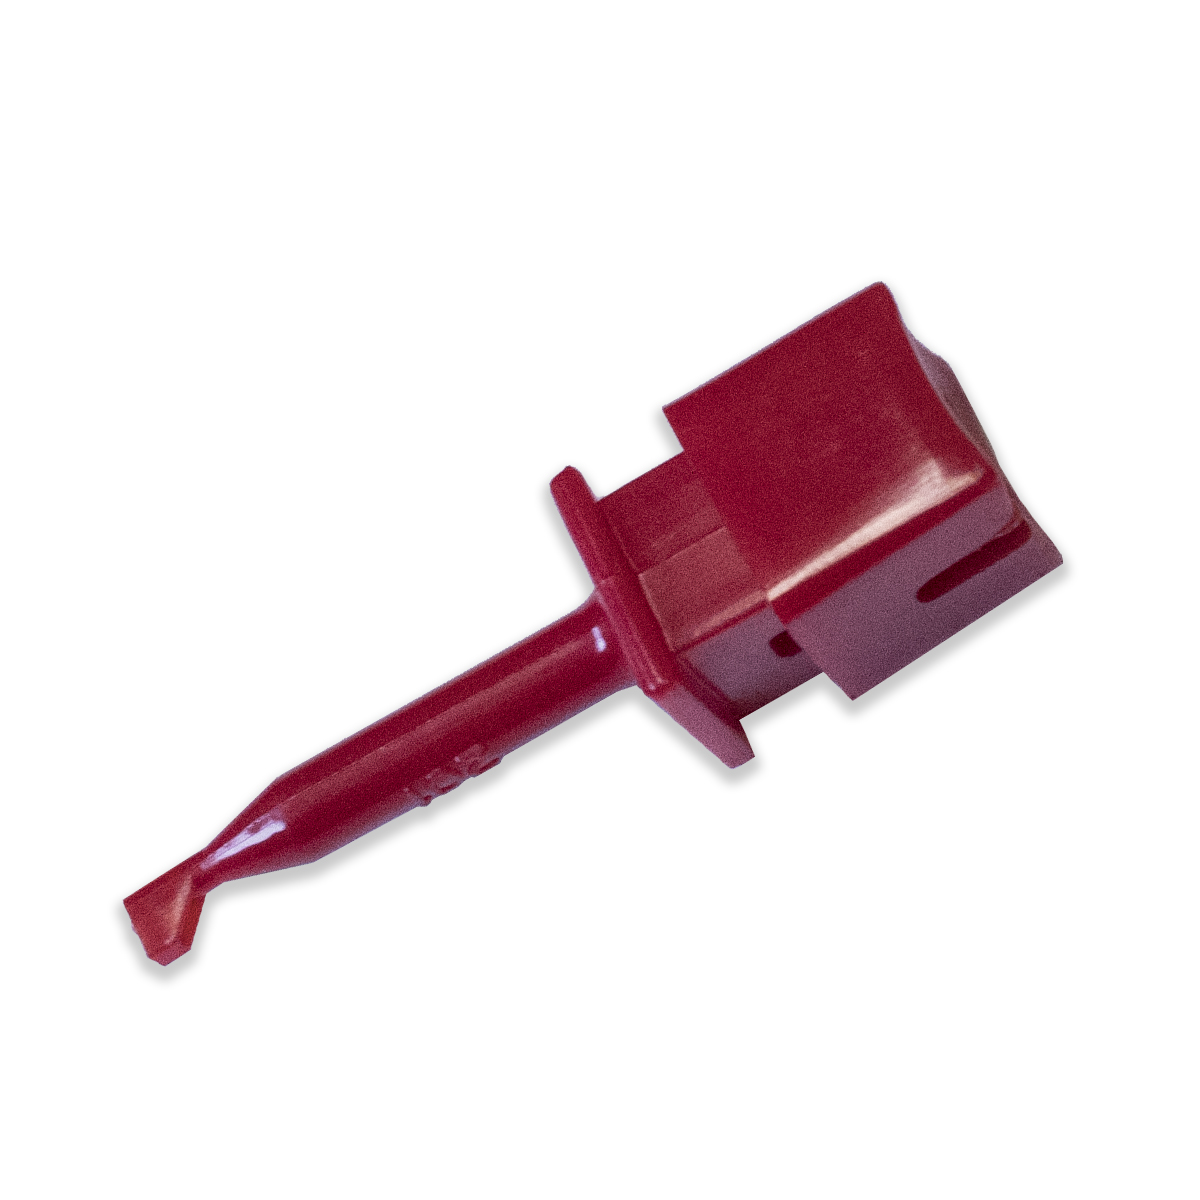 Plunger Clip, small